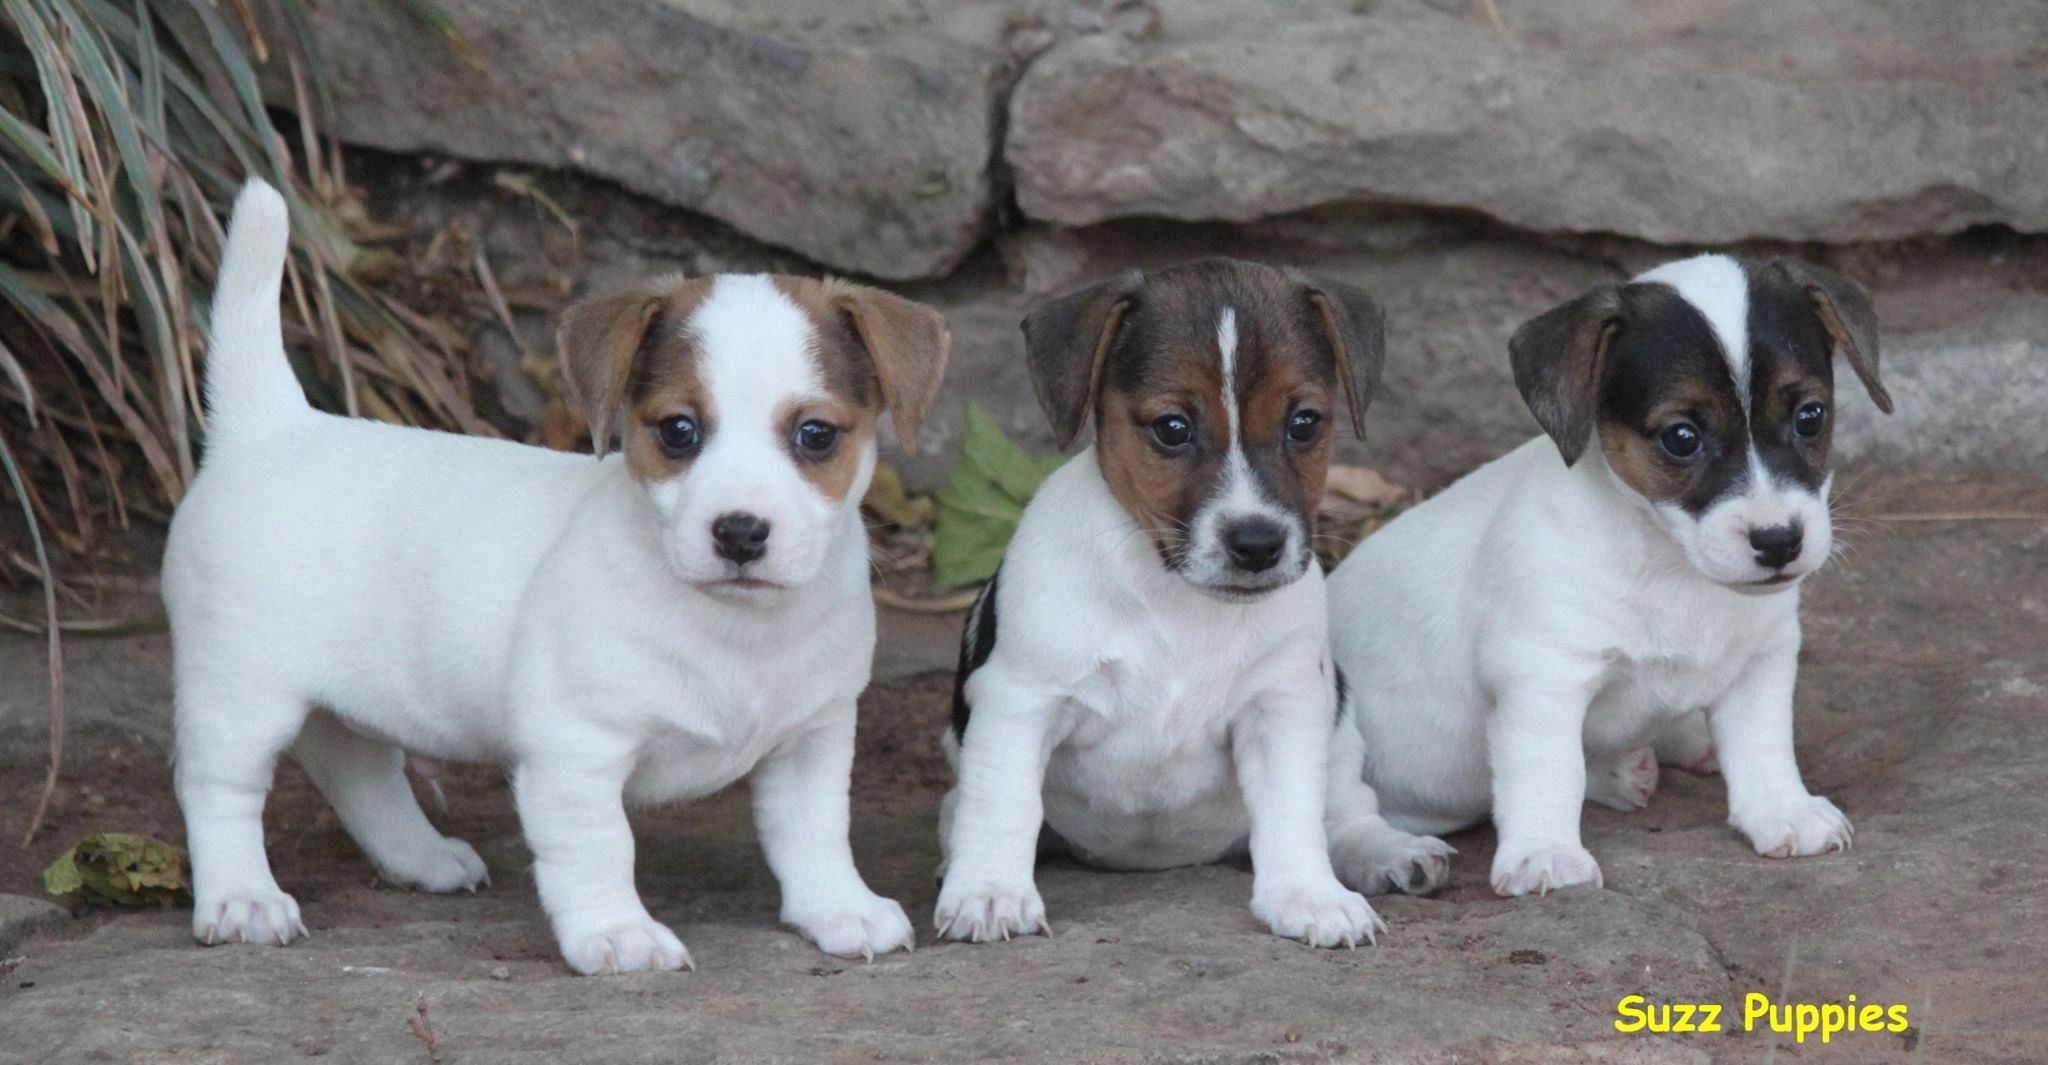 Jack Russell Terrier Puppies for Sale - Cuttin up Jack Russell